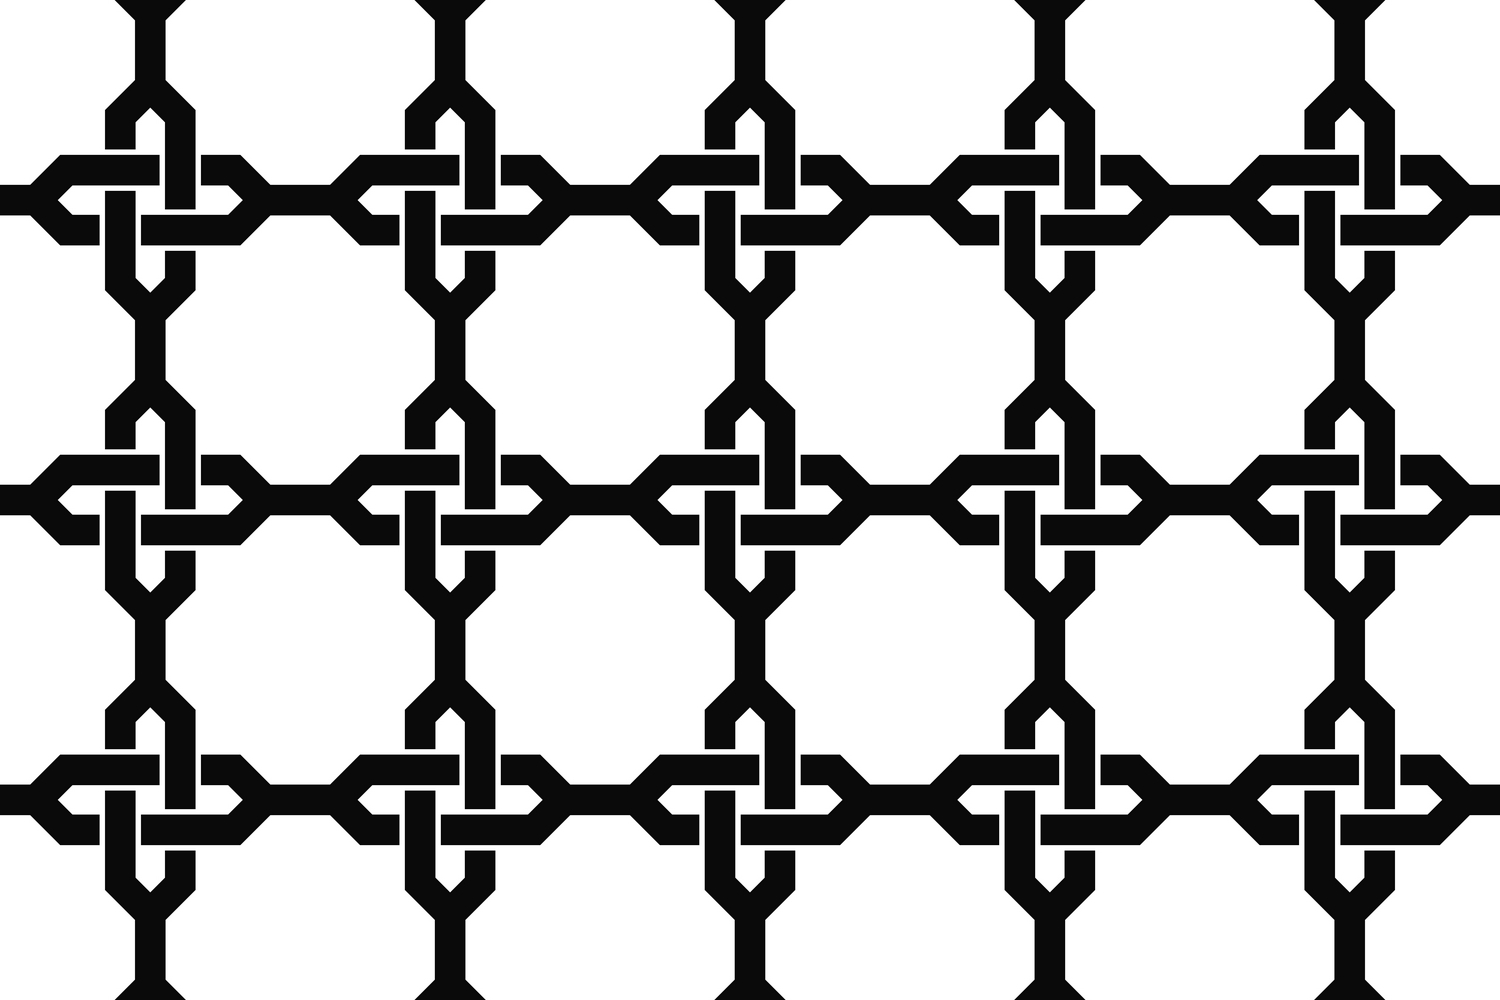 15 seamless grid patterns (EPS, AI, SVG, JPG 5000x5000) example image 3